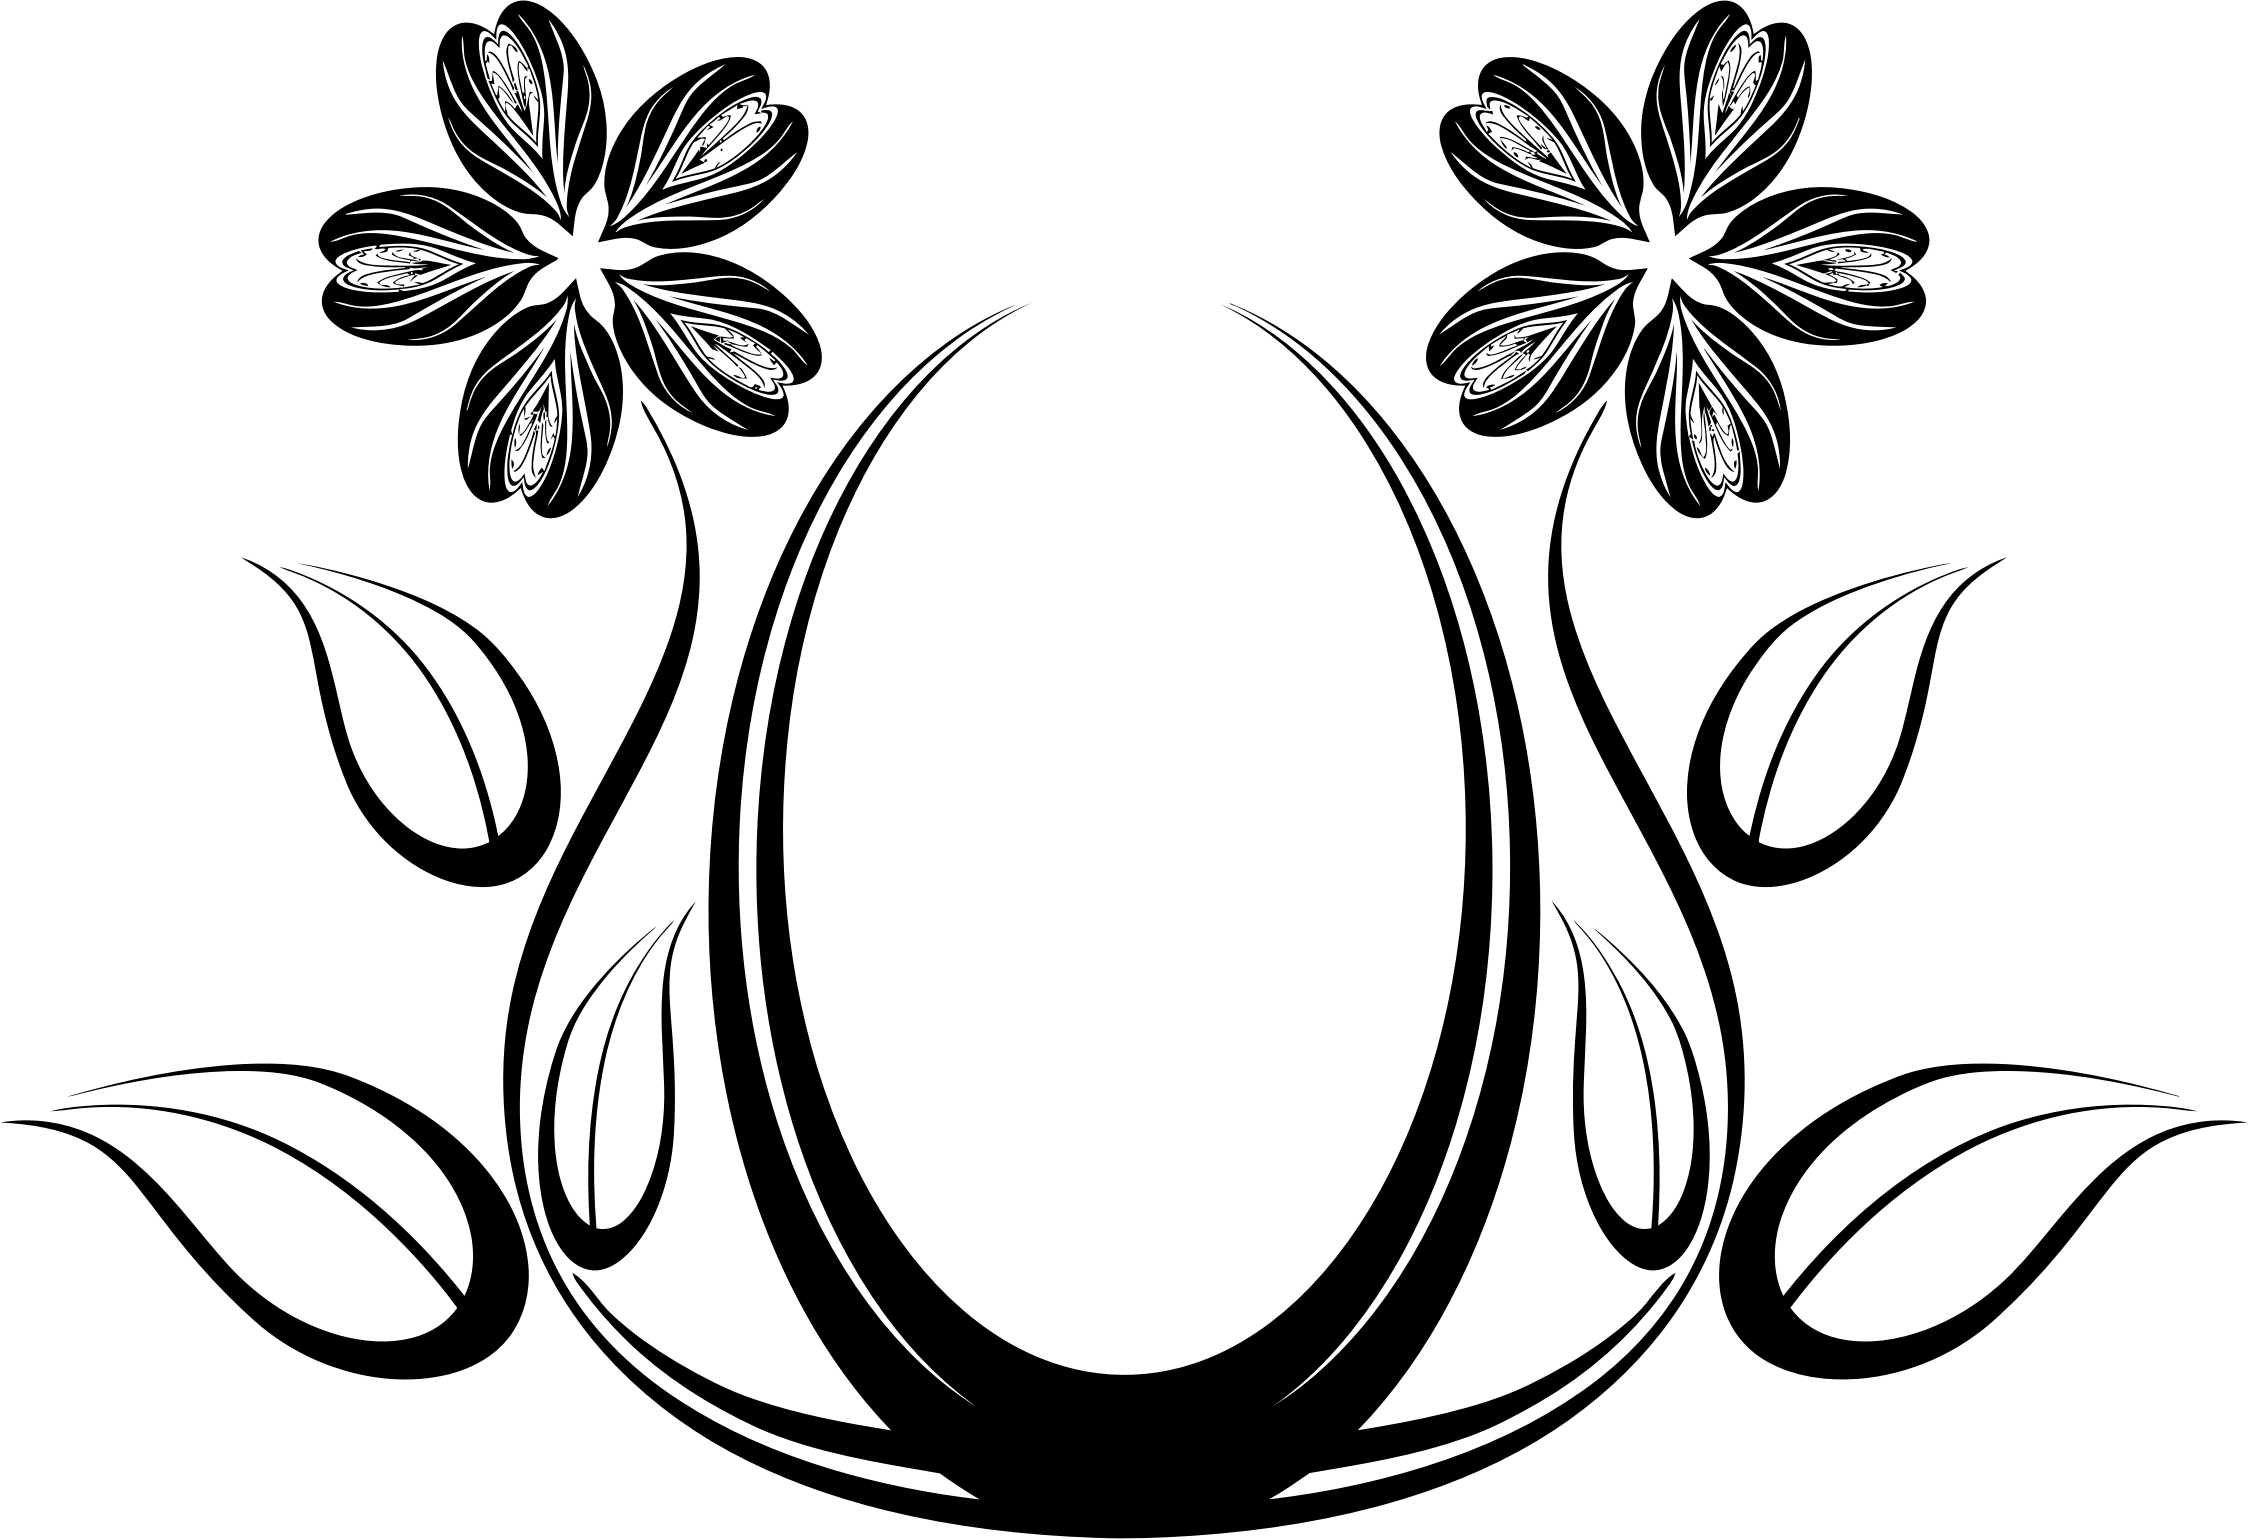 Clipart pictures of flower designs svg free download Silhouette Flower Designs at GetDrawings.com | Free for personal use ... svg free download